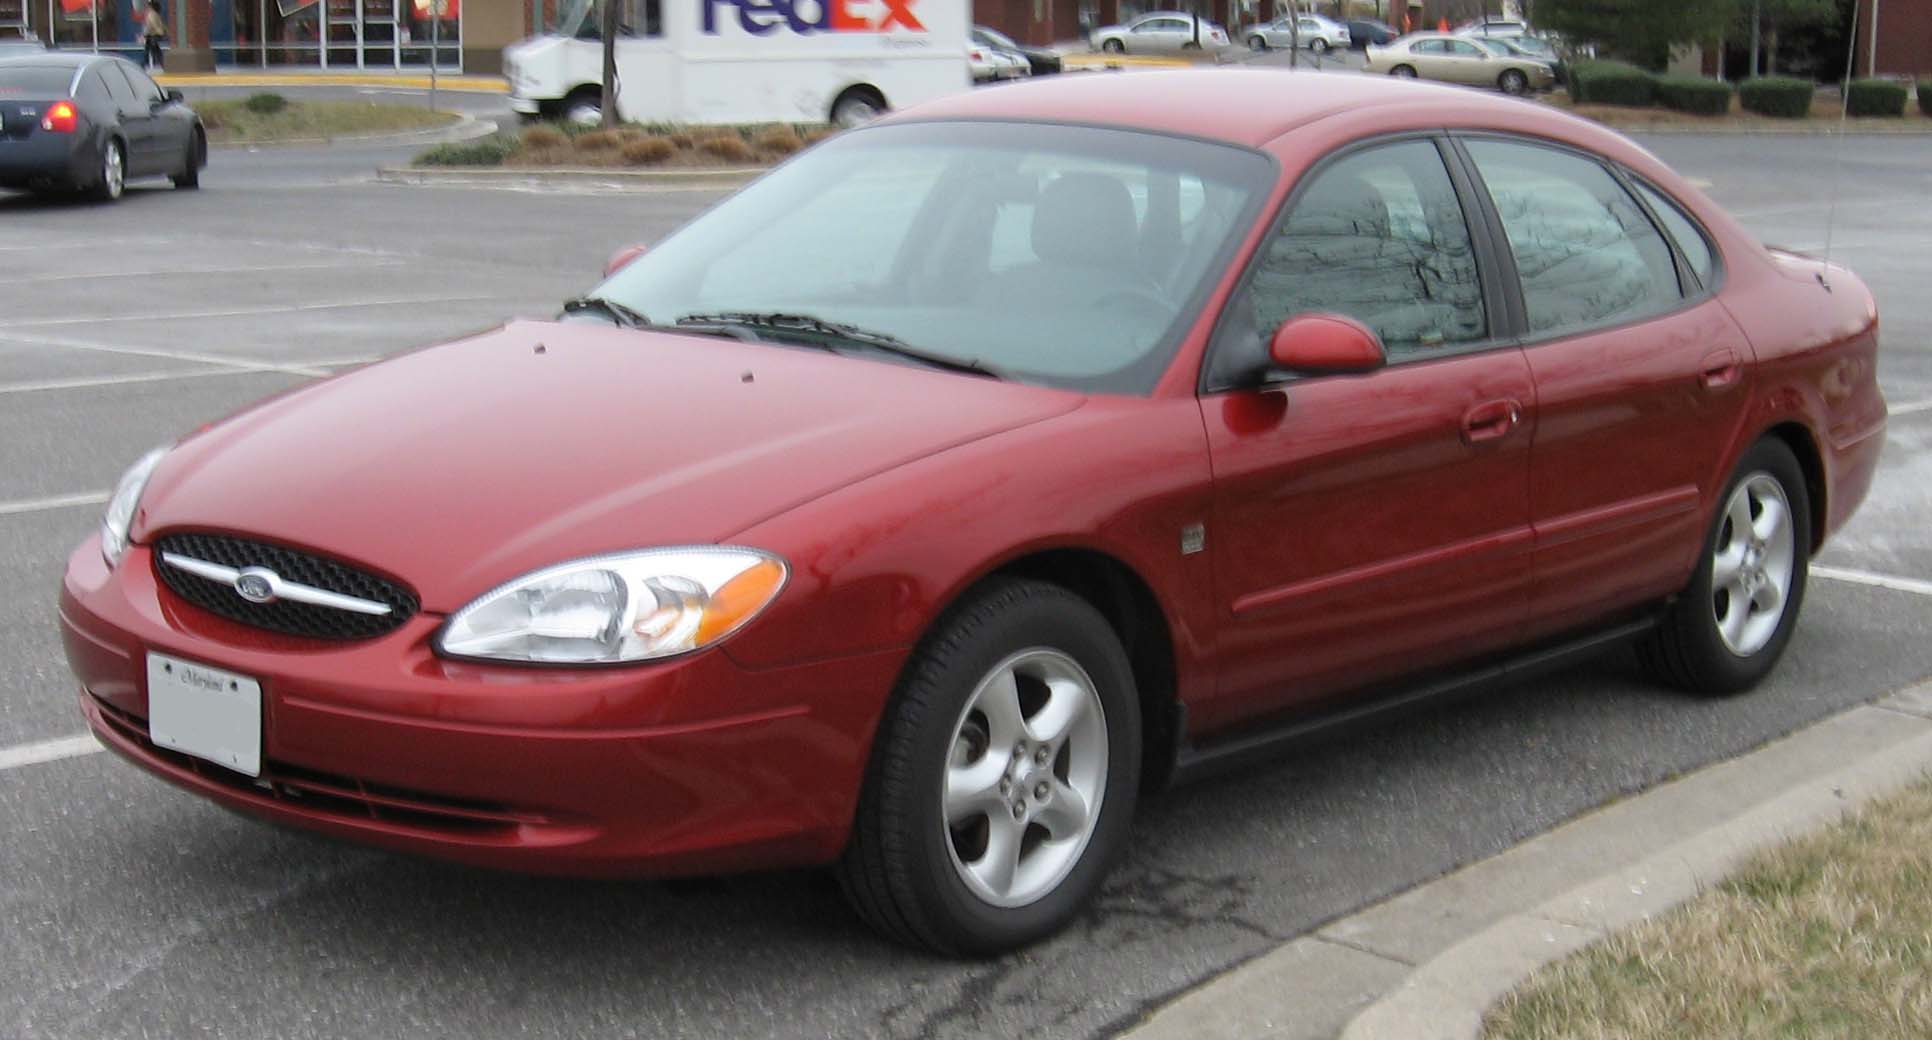 Ford Taurus red #2